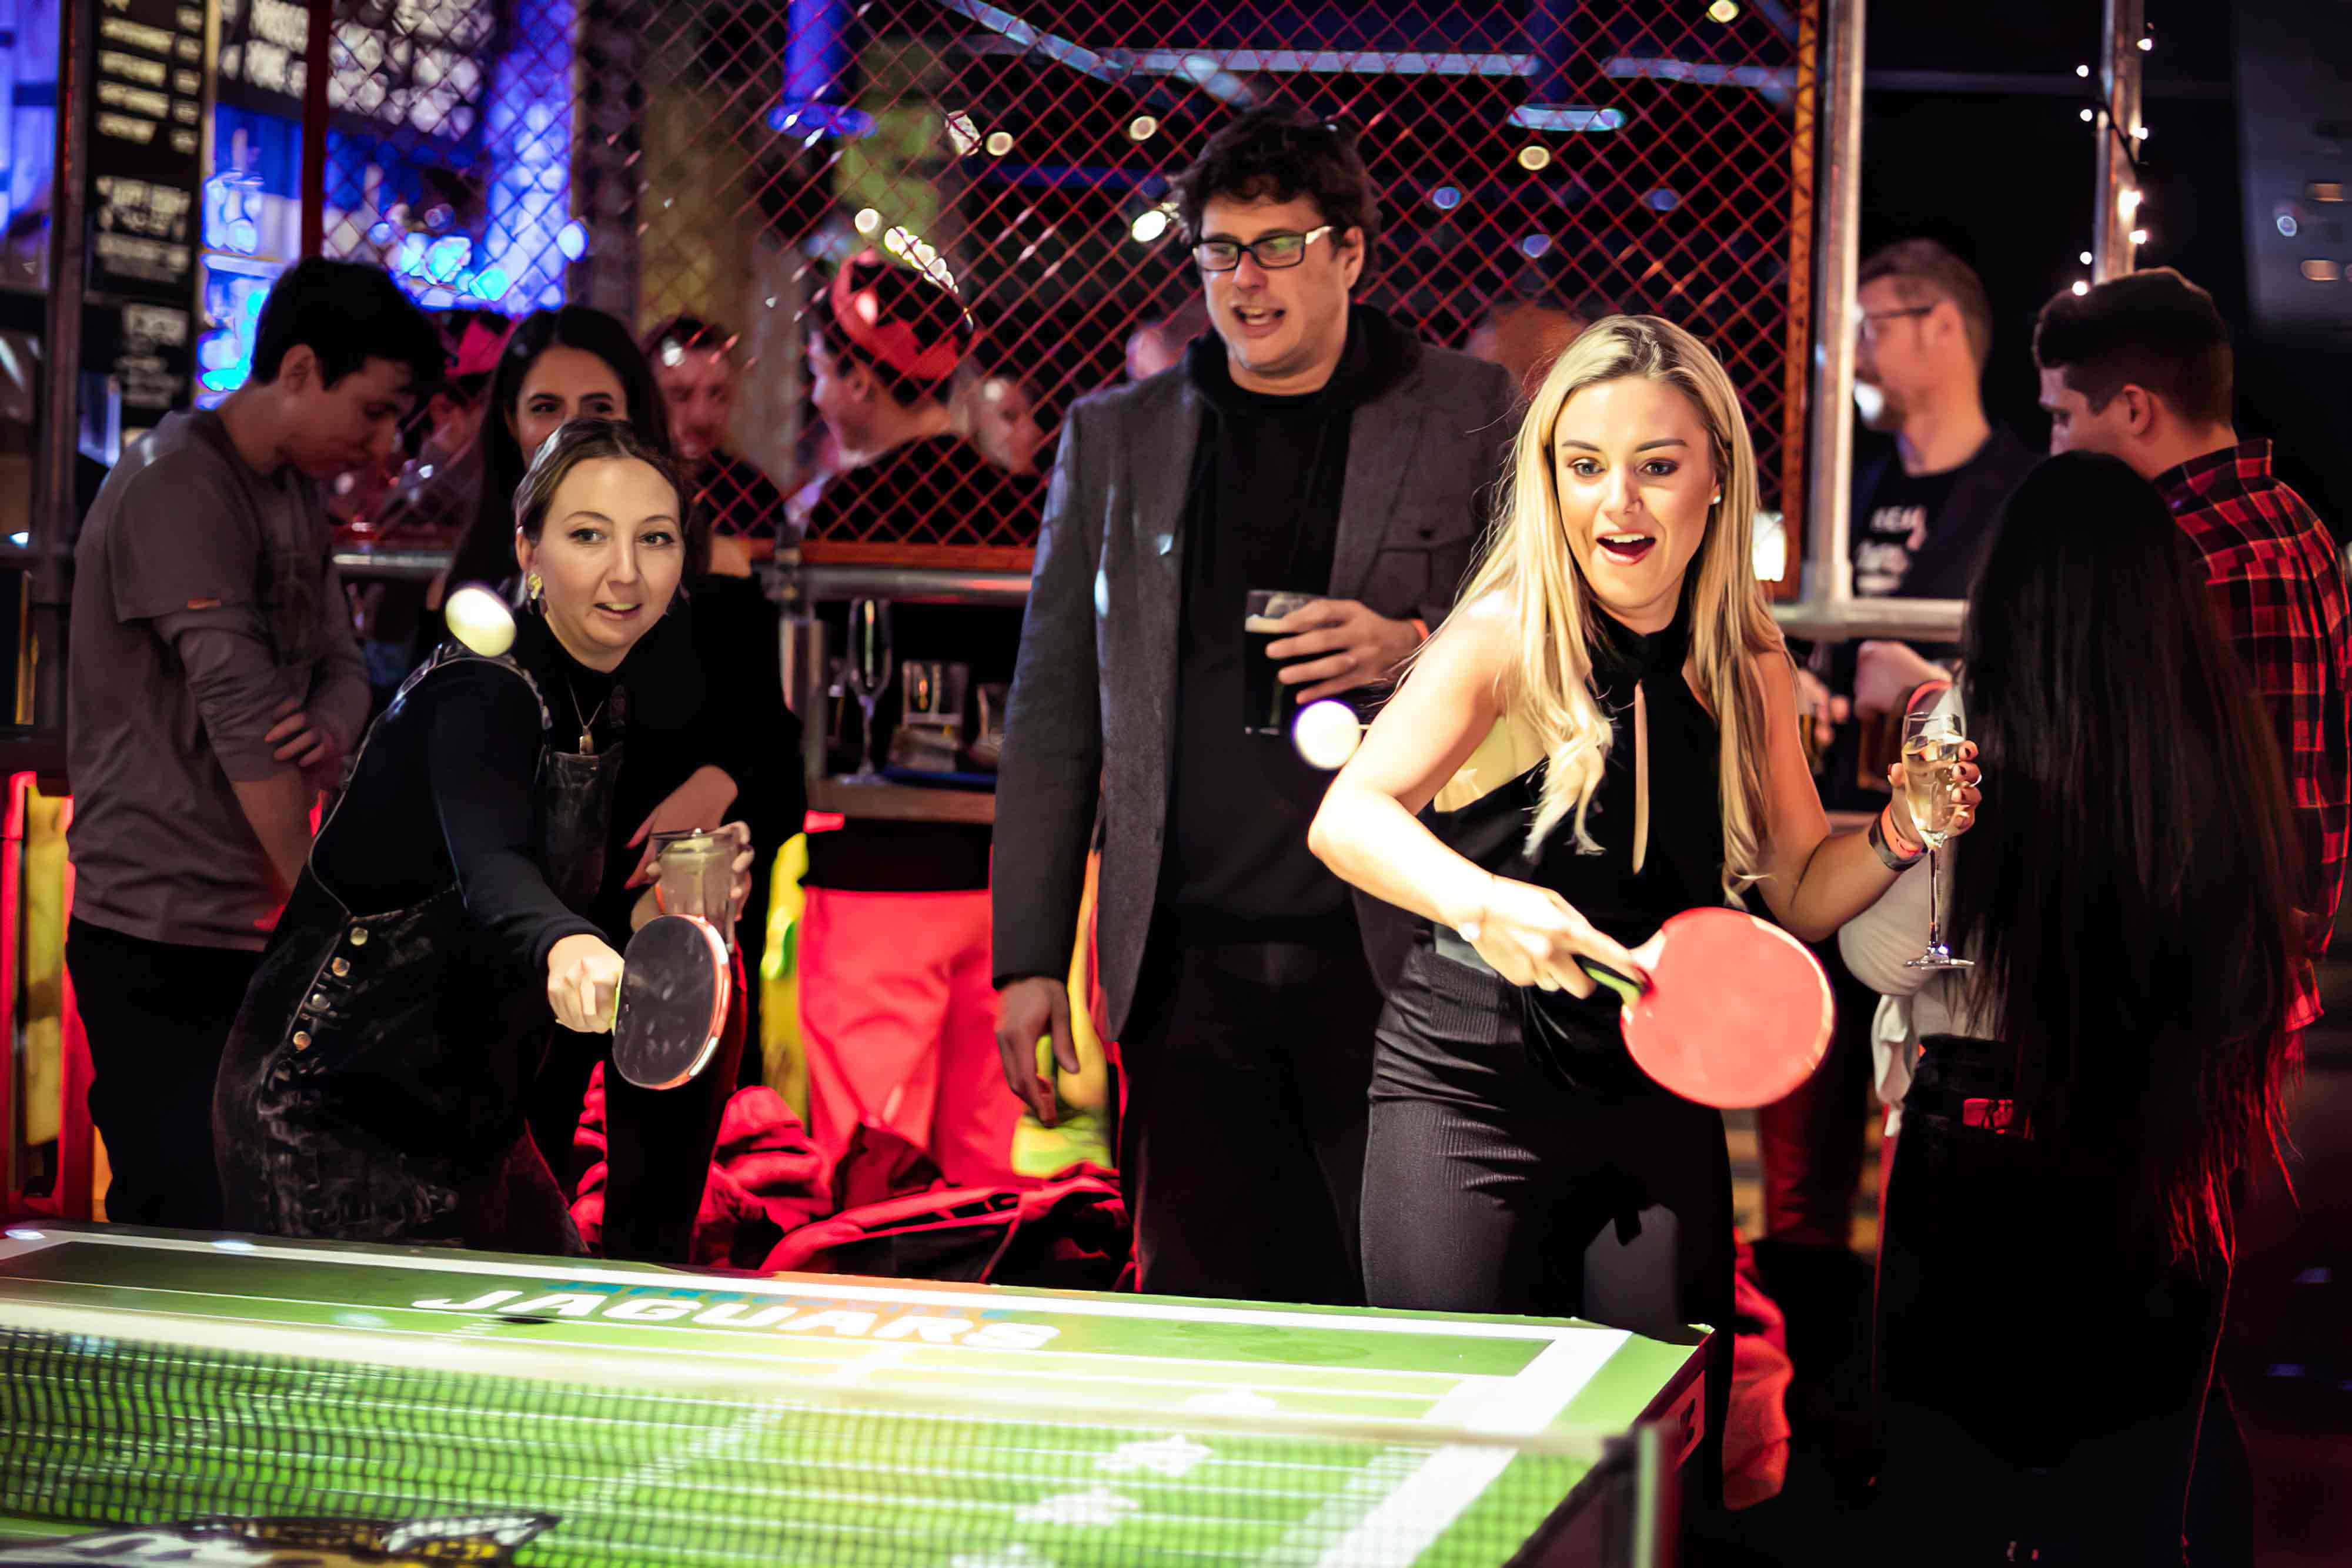 Play table tennis at East London favourite experiences venue.